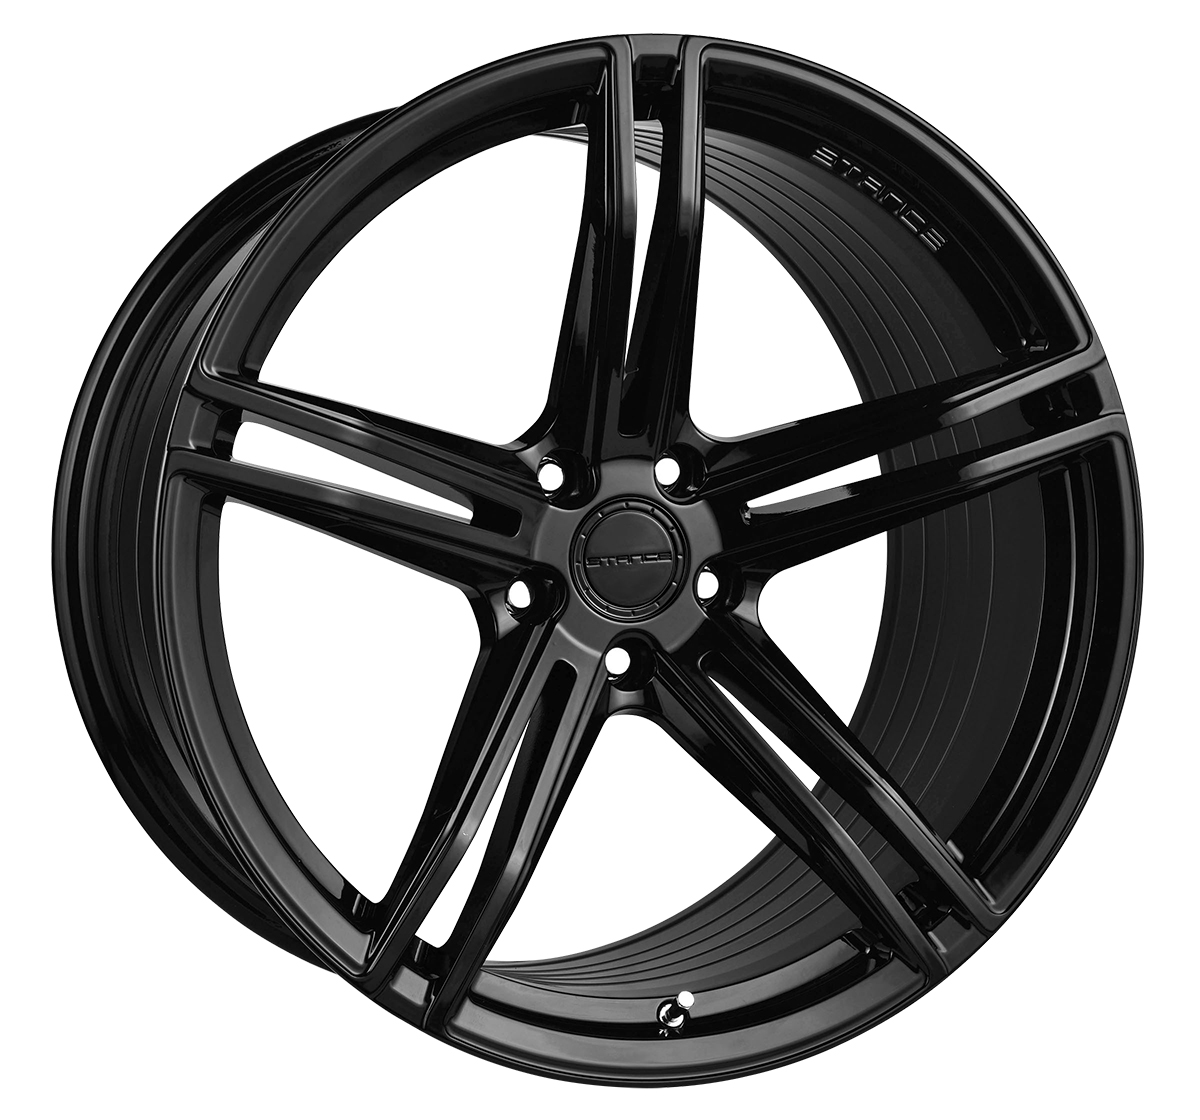 stance-sf08-gloss-black-rotory-forged-concave-lightweight-wheels.jpg